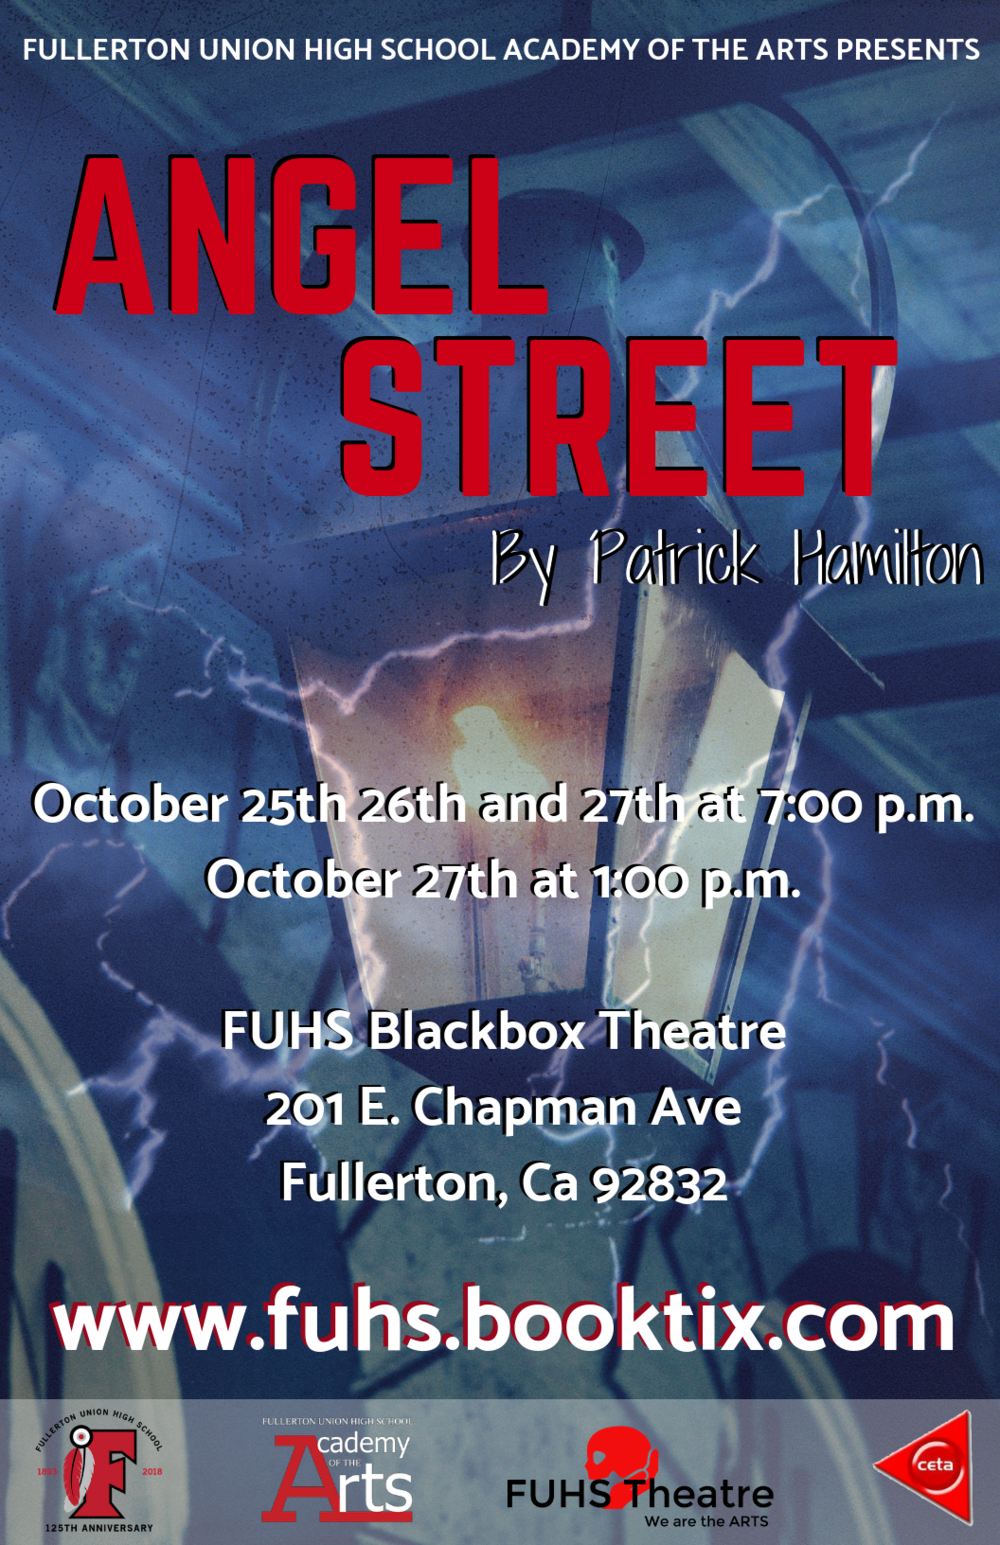 Angel Street Poster (1).png